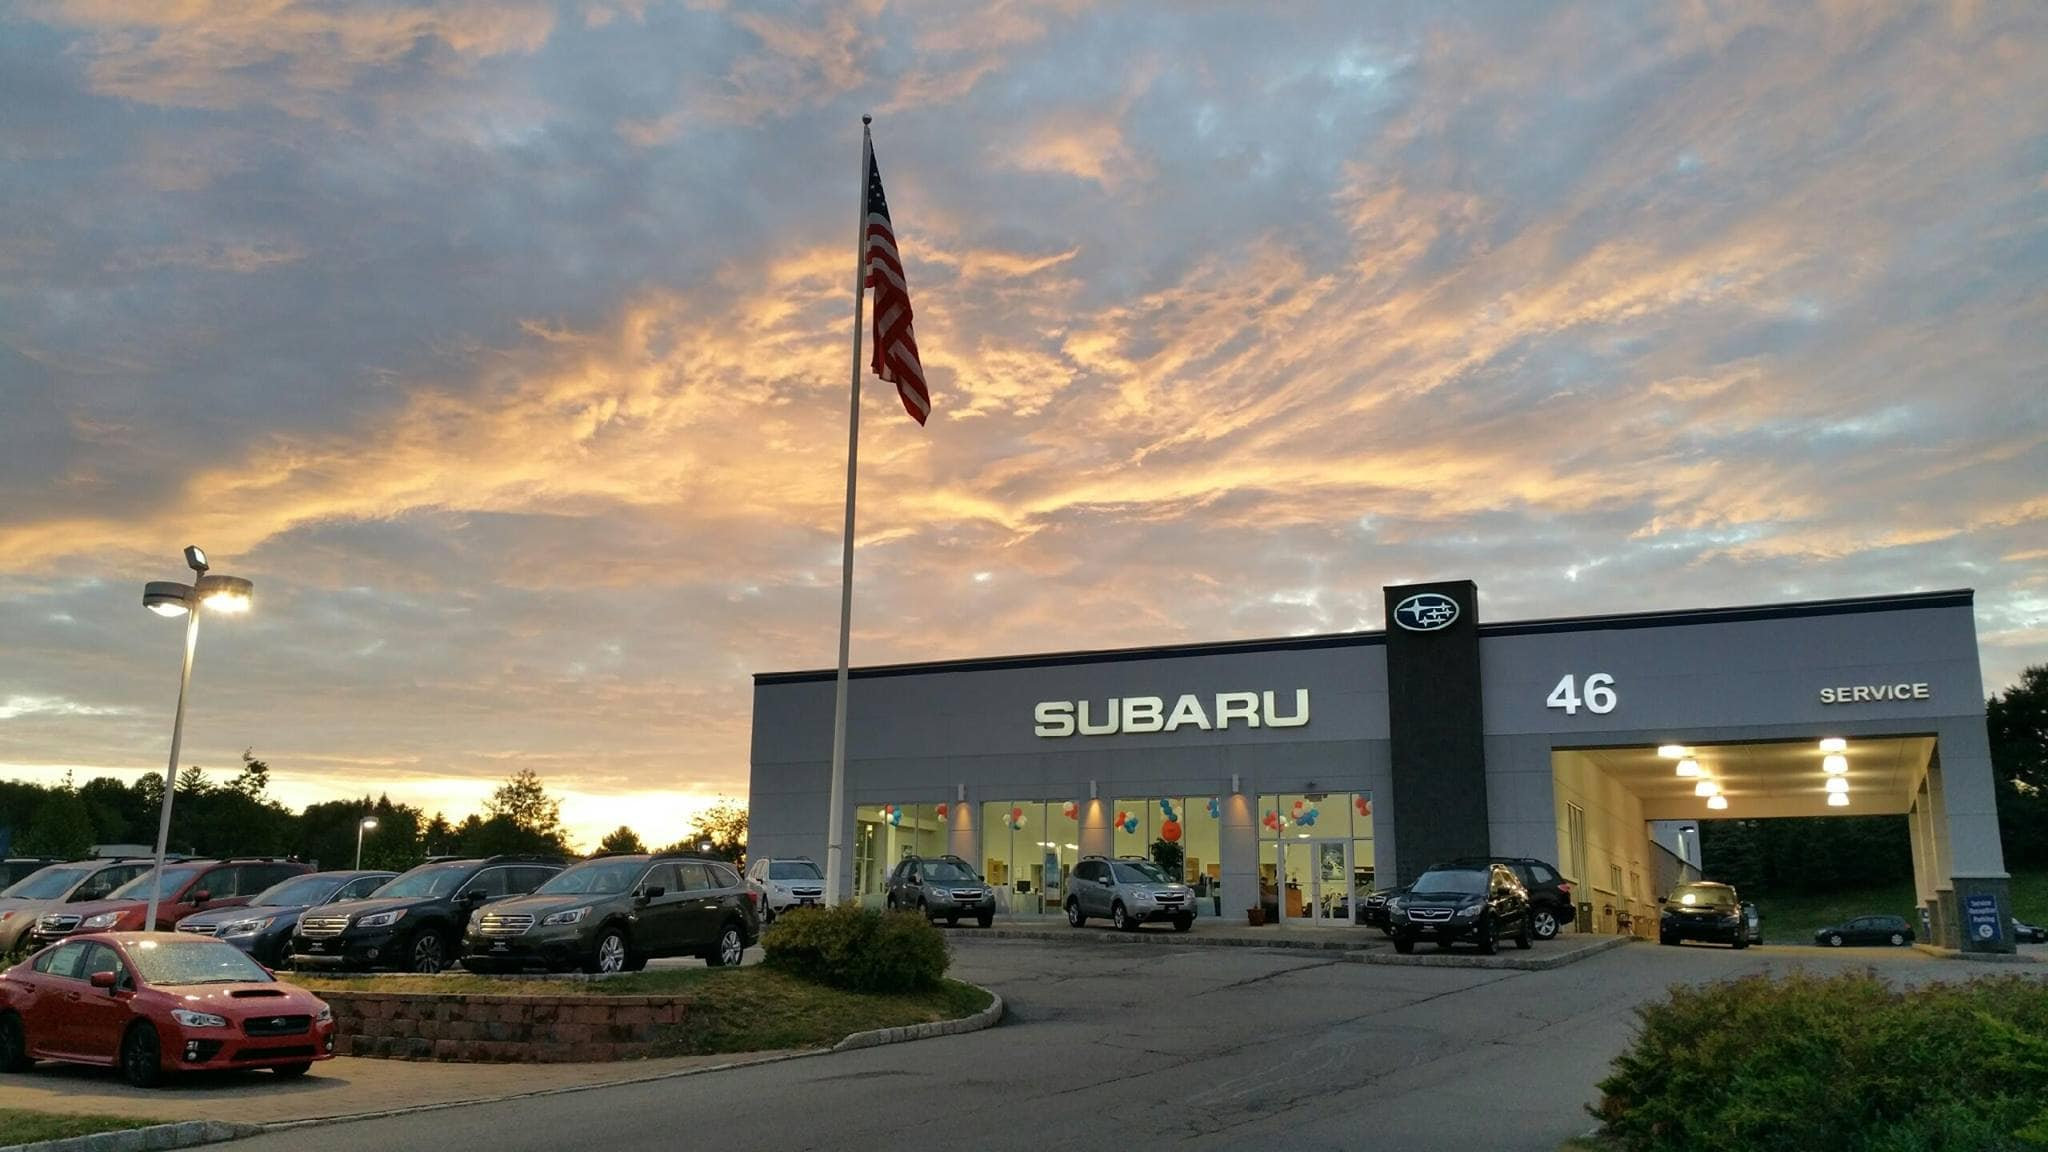 Used 2018 Subaru Forester For Sale At Route 46 Subaru Vin